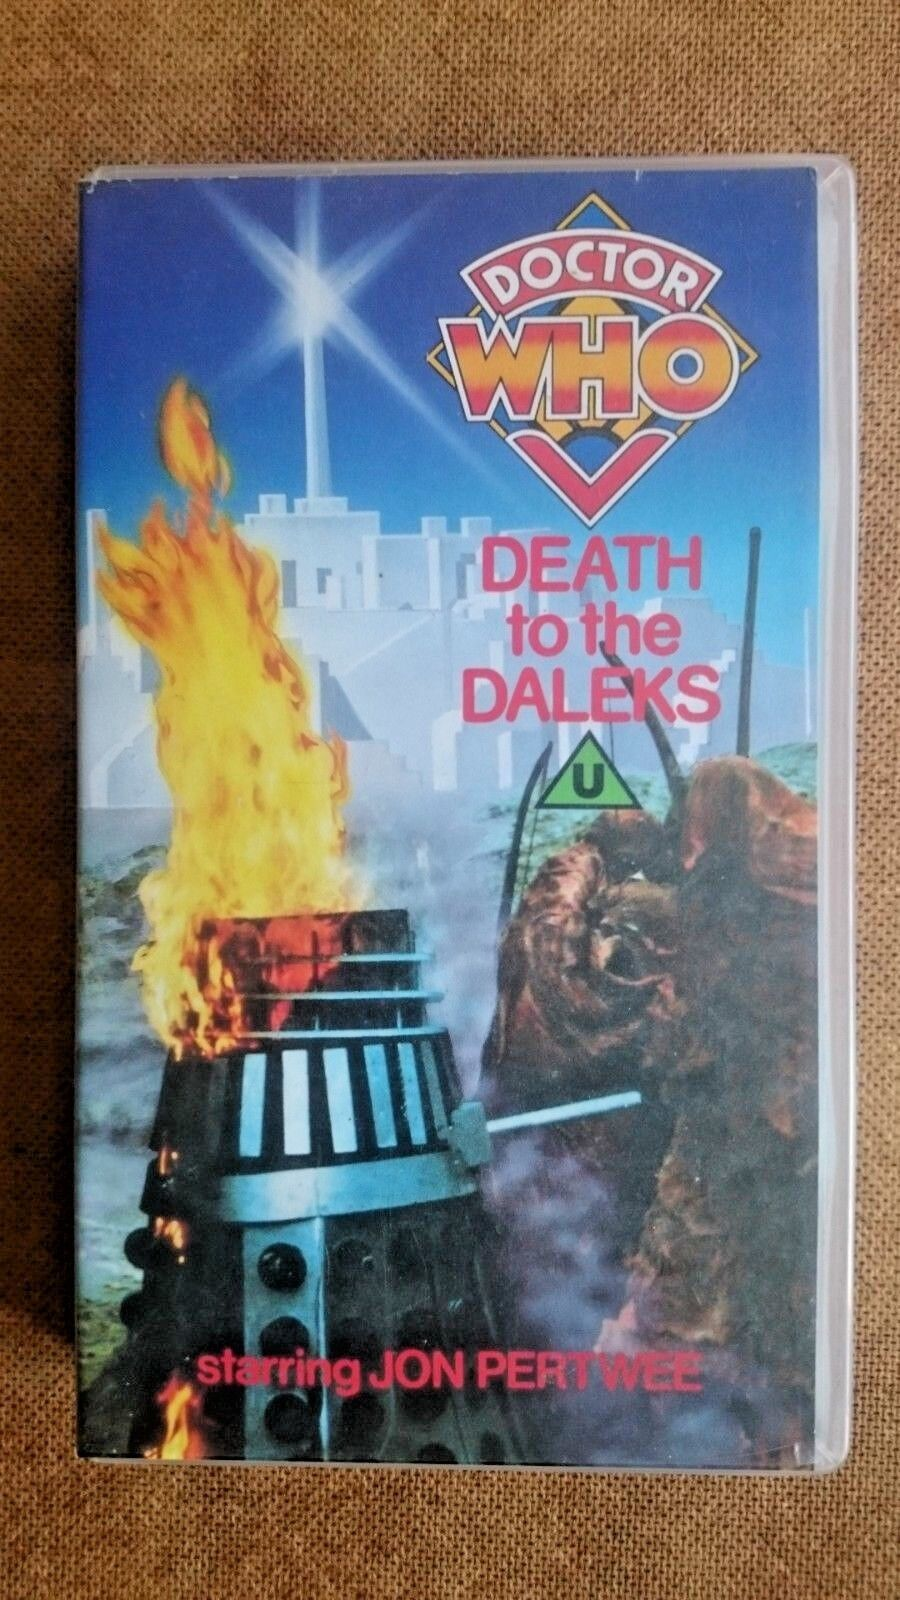 Doctor Who - Death to the Daleks (Movie VHS Edition) - Jon Pertwee